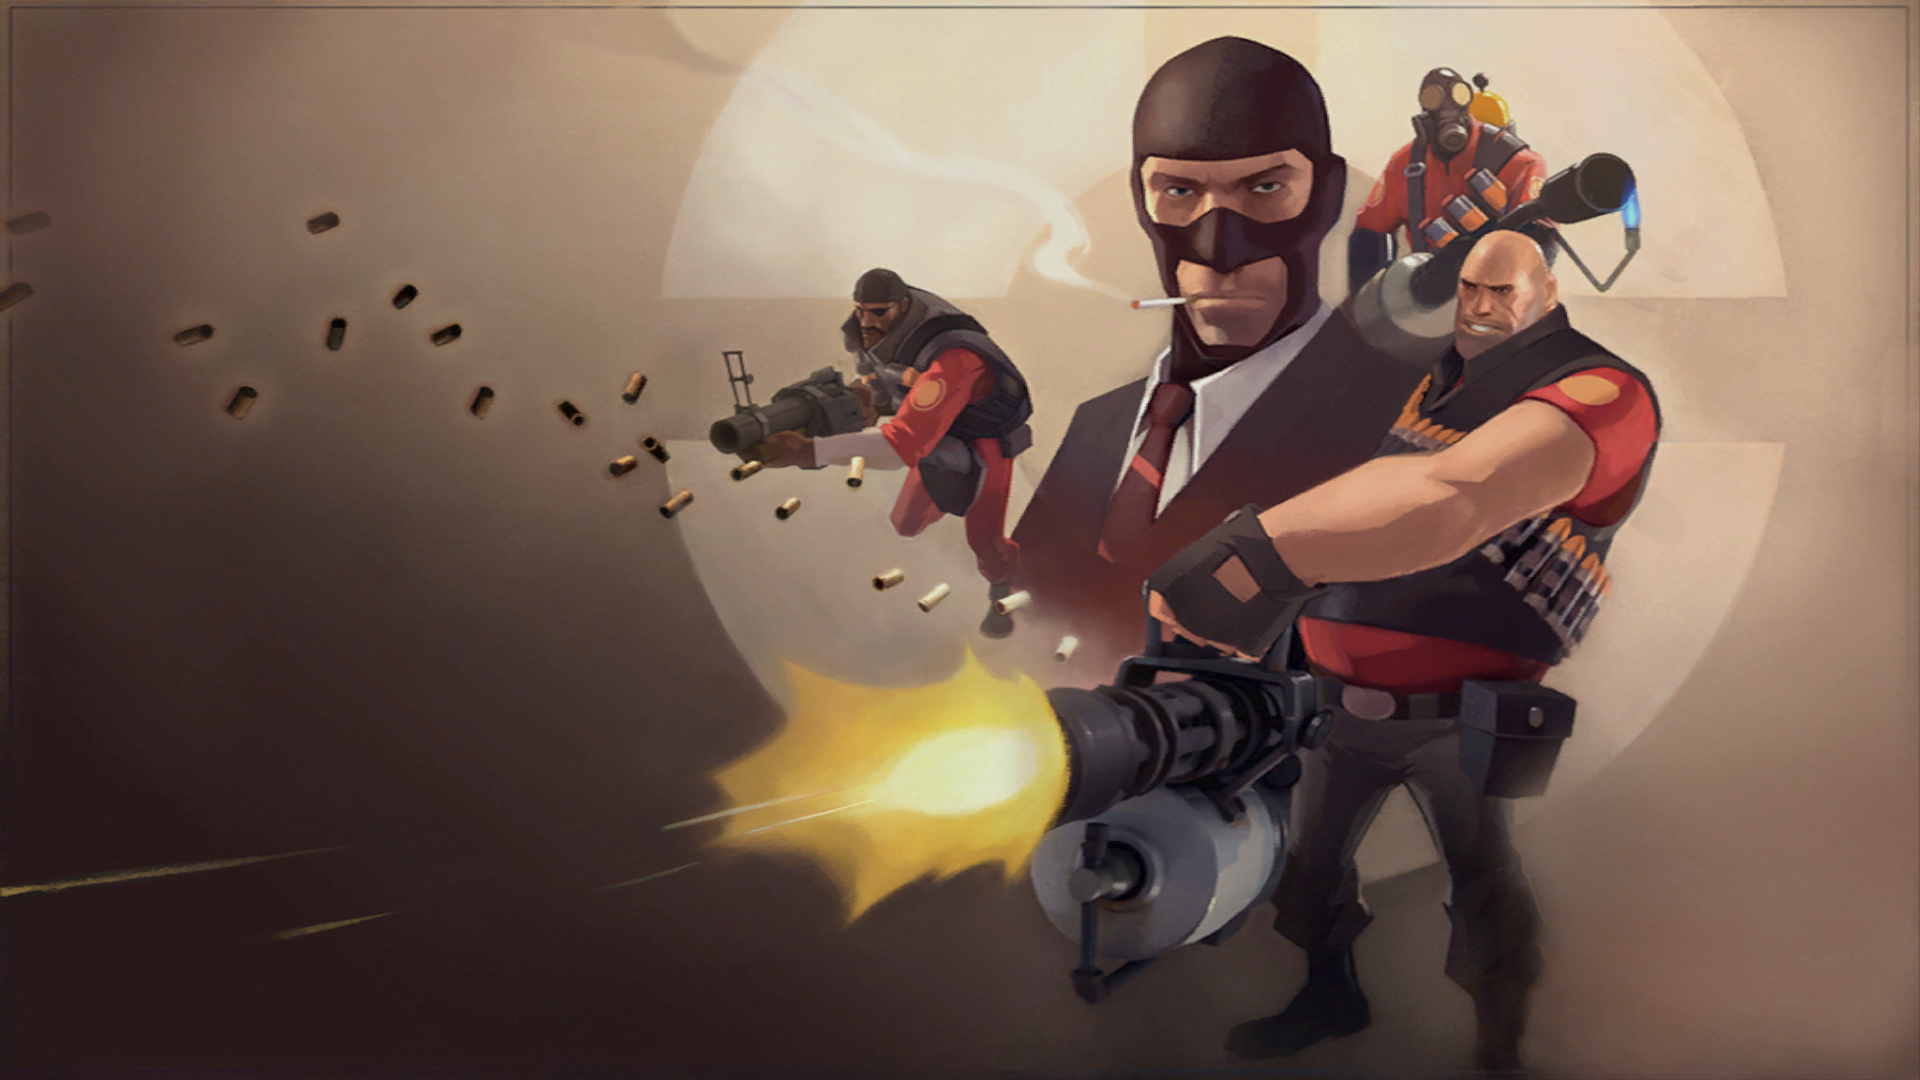 Team Fortress 2008 Throwback Mod Steam Page Removed Updated Pc